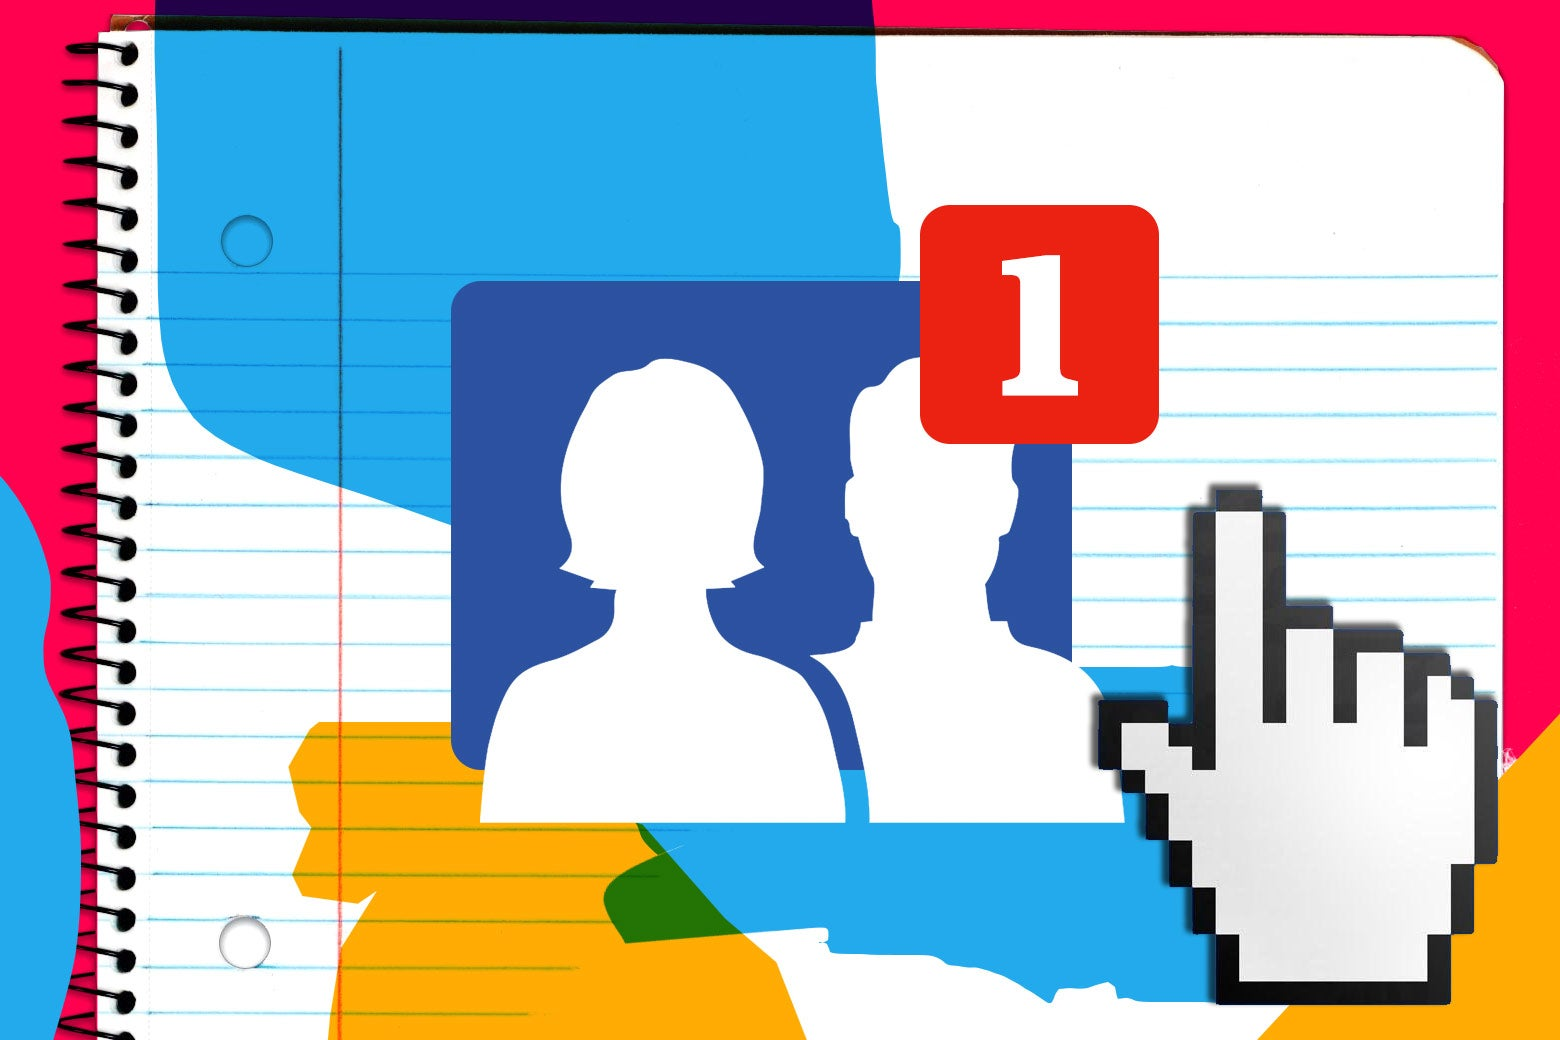 A cursor hovering over a Facebook icon displaying a new friend request, on a background of loose-leaf paper.